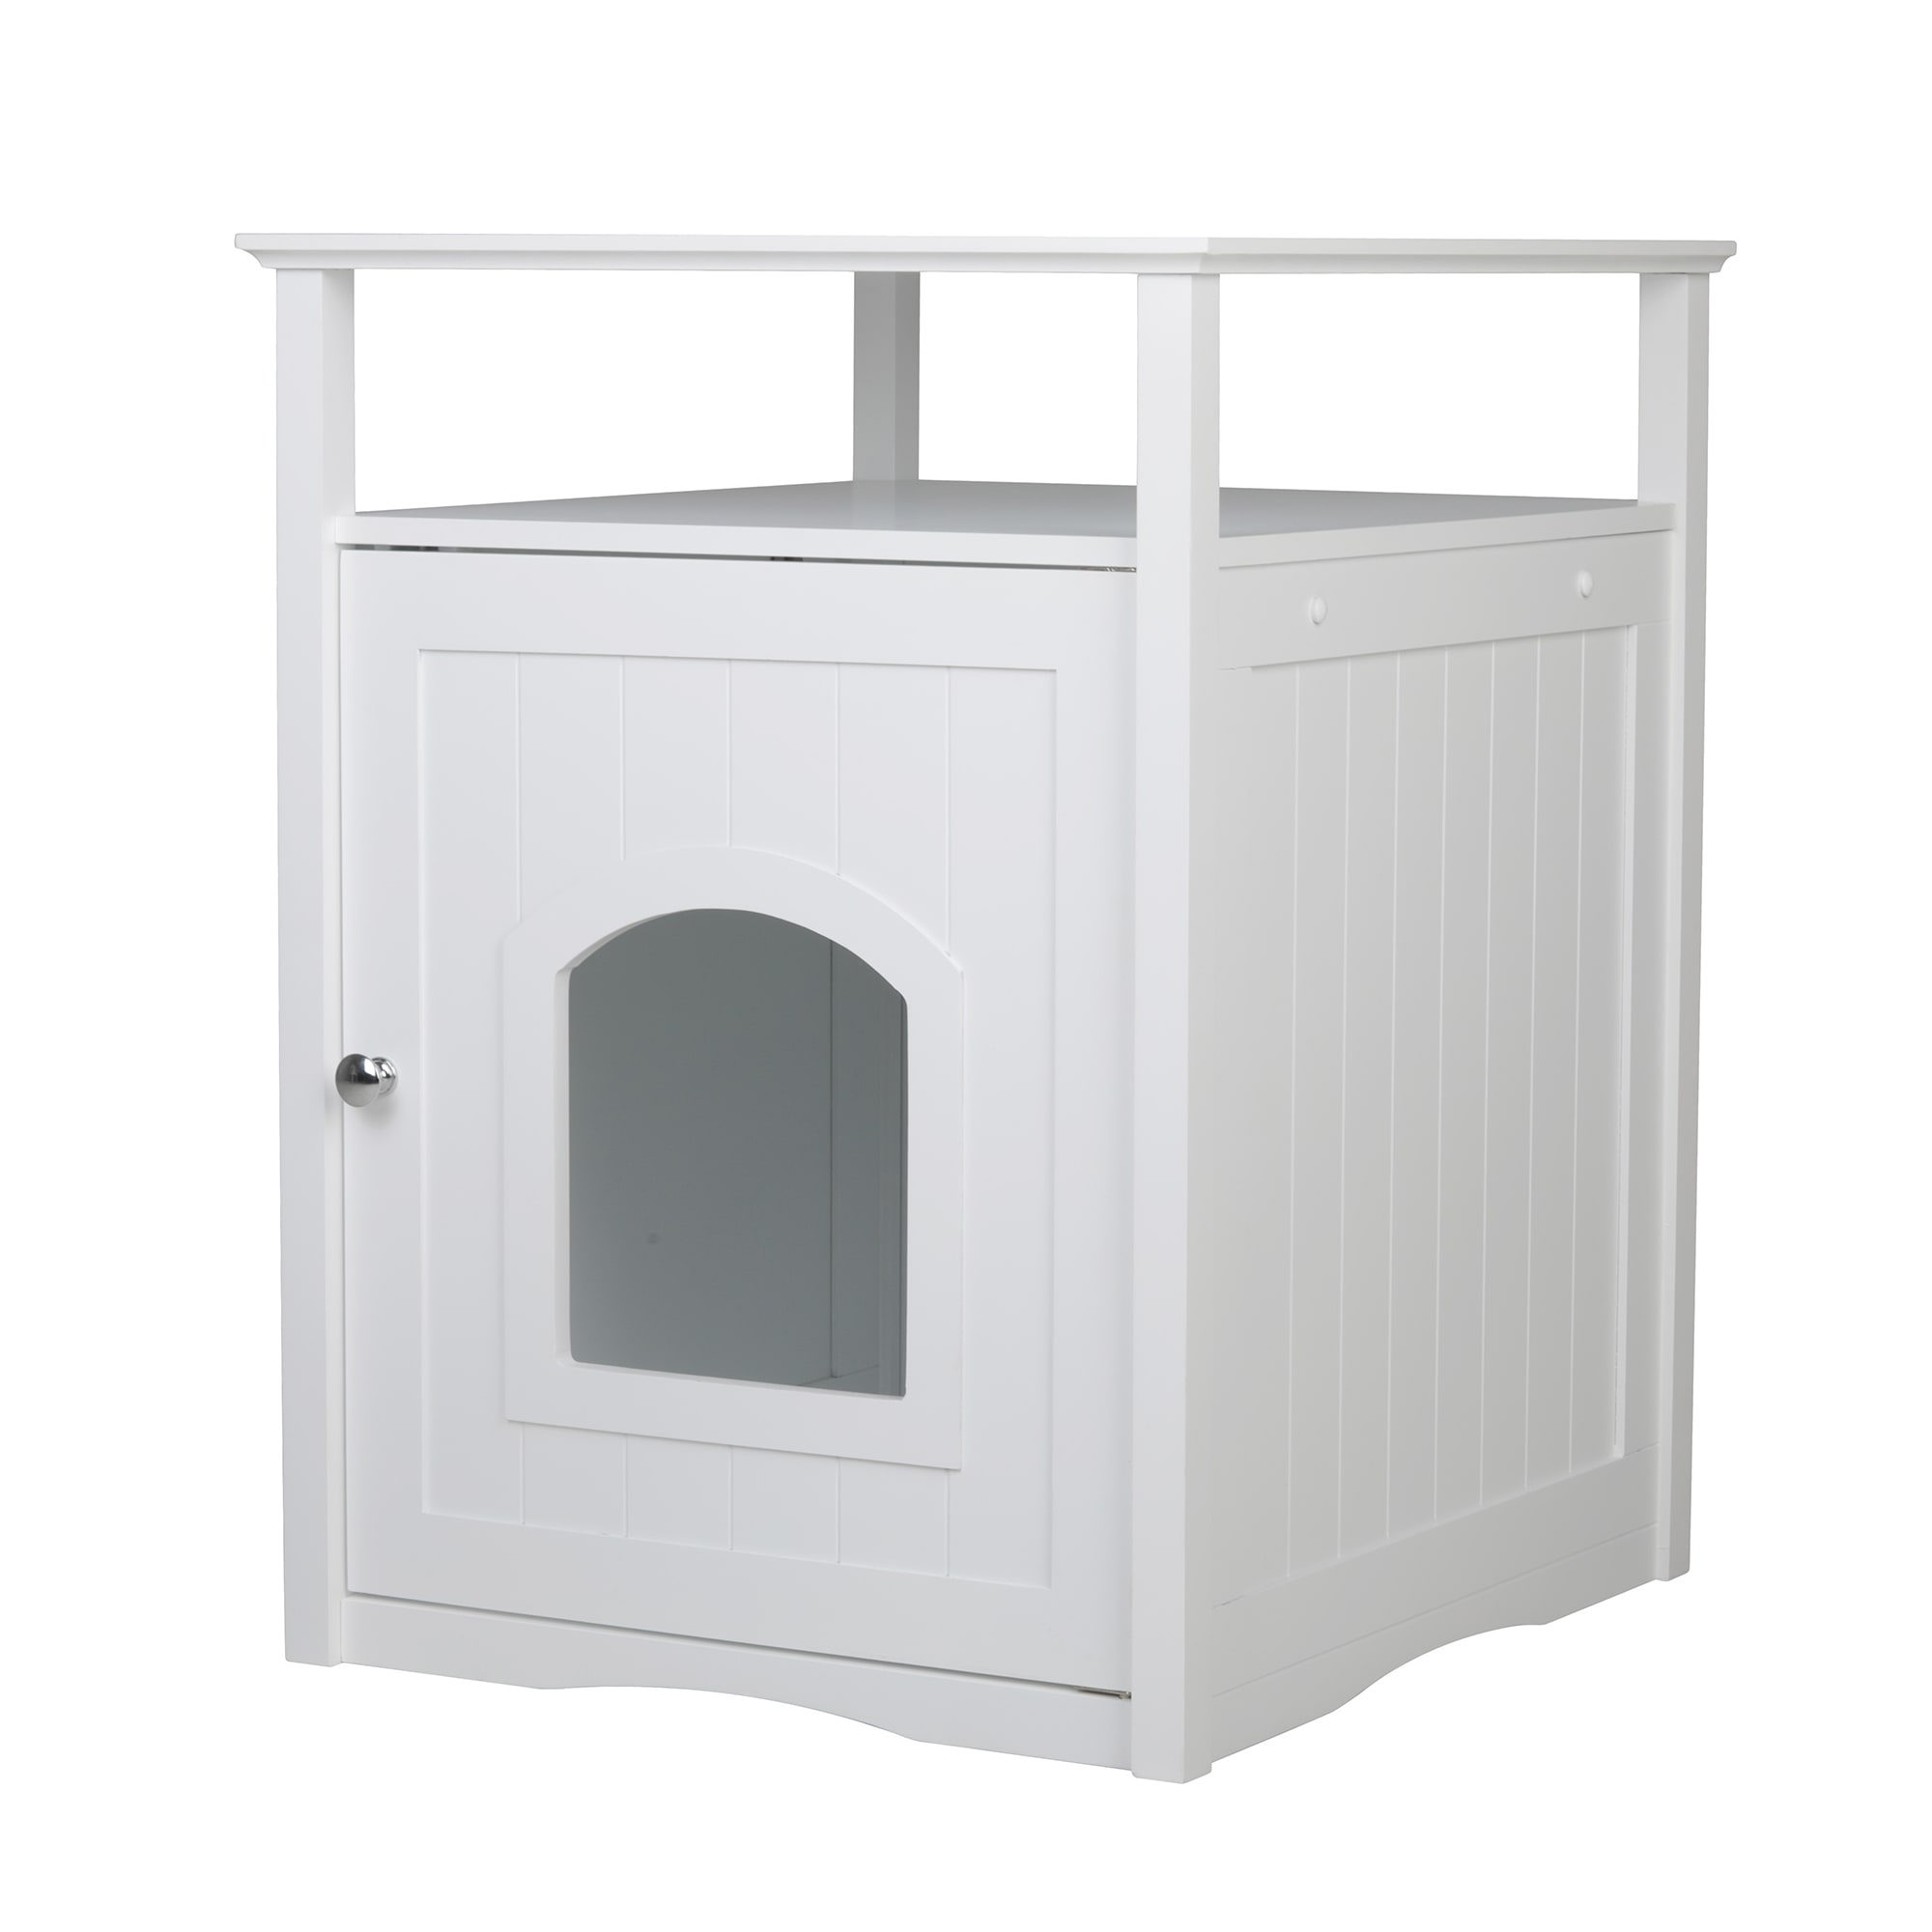 Zoovilla Cat Washroom Night Stand & Pet House in White, Standard